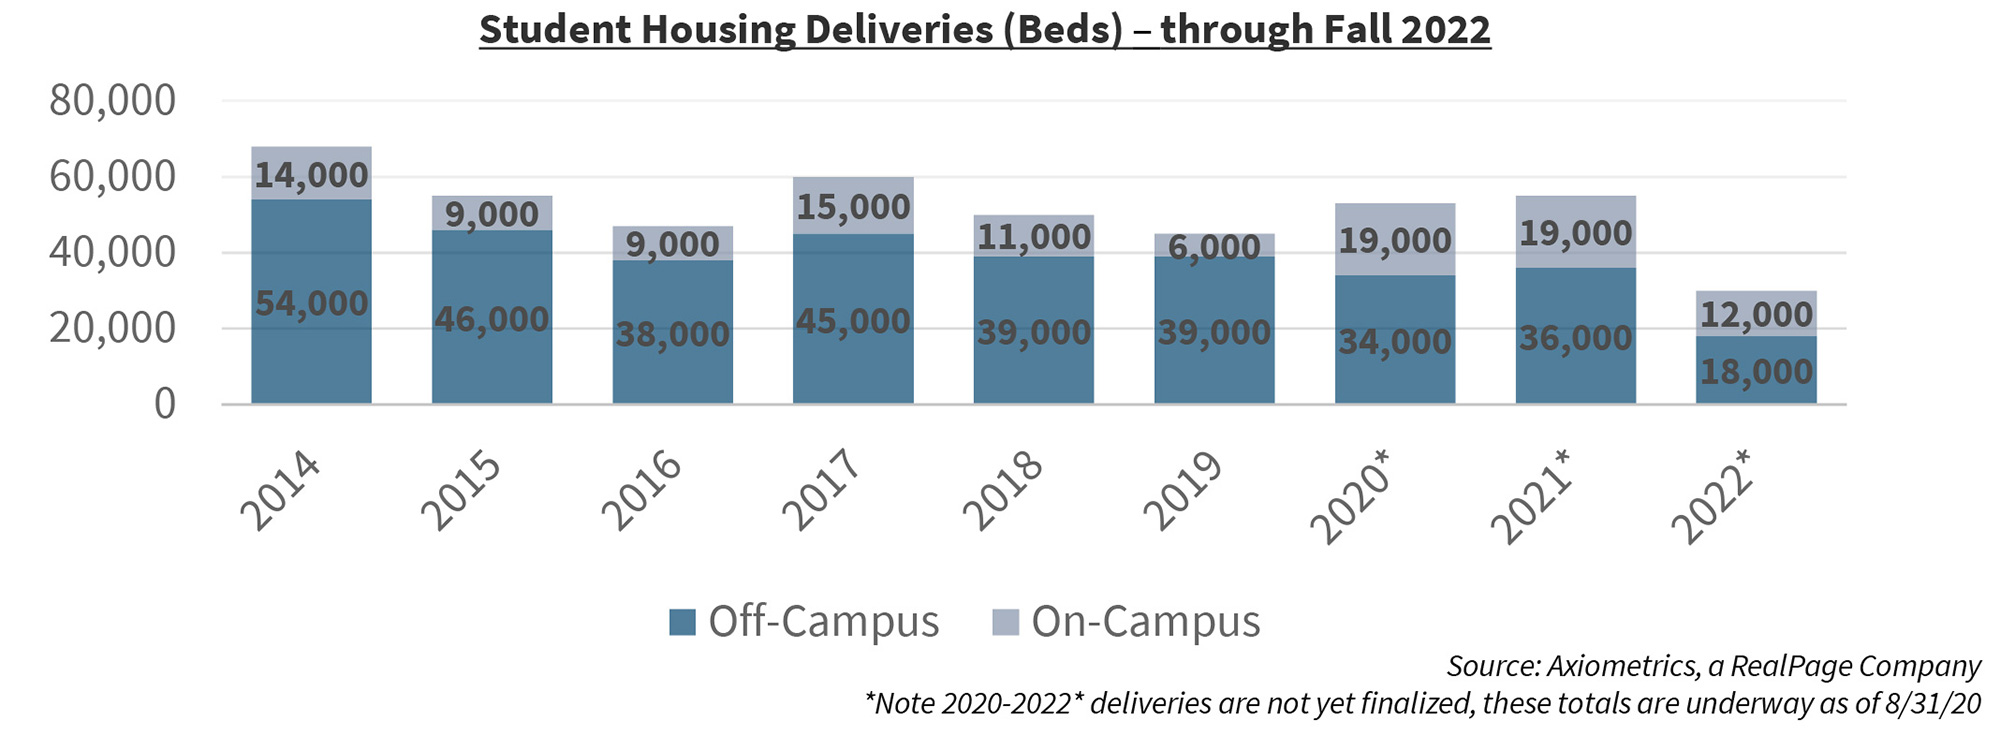 Student Housing Deliveries (Beds) – through Fall 2022